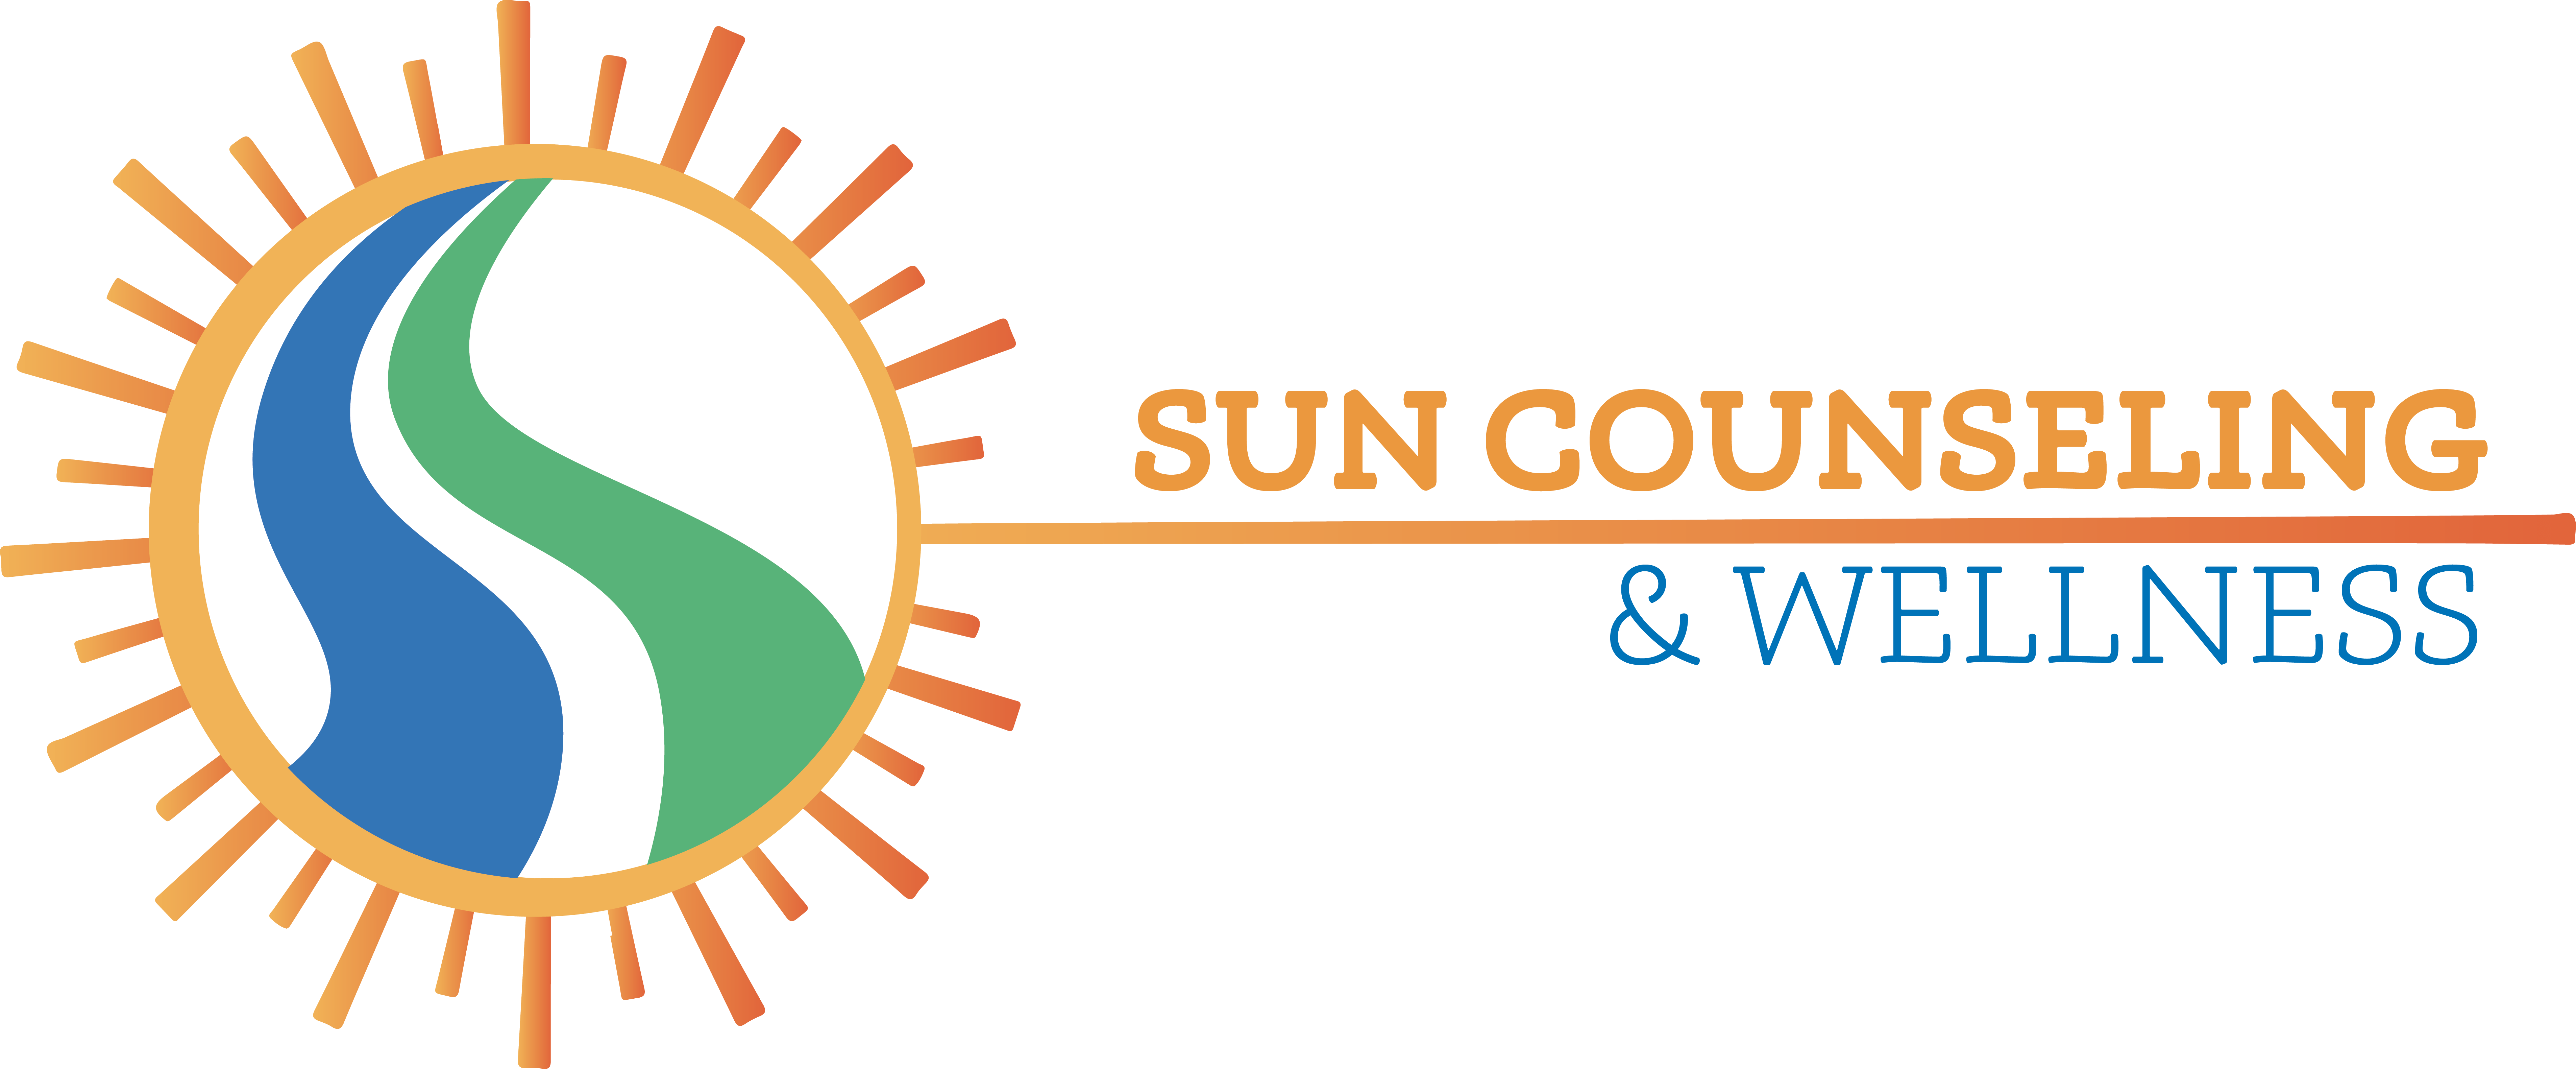 Sun Counseling and Wellness Logo